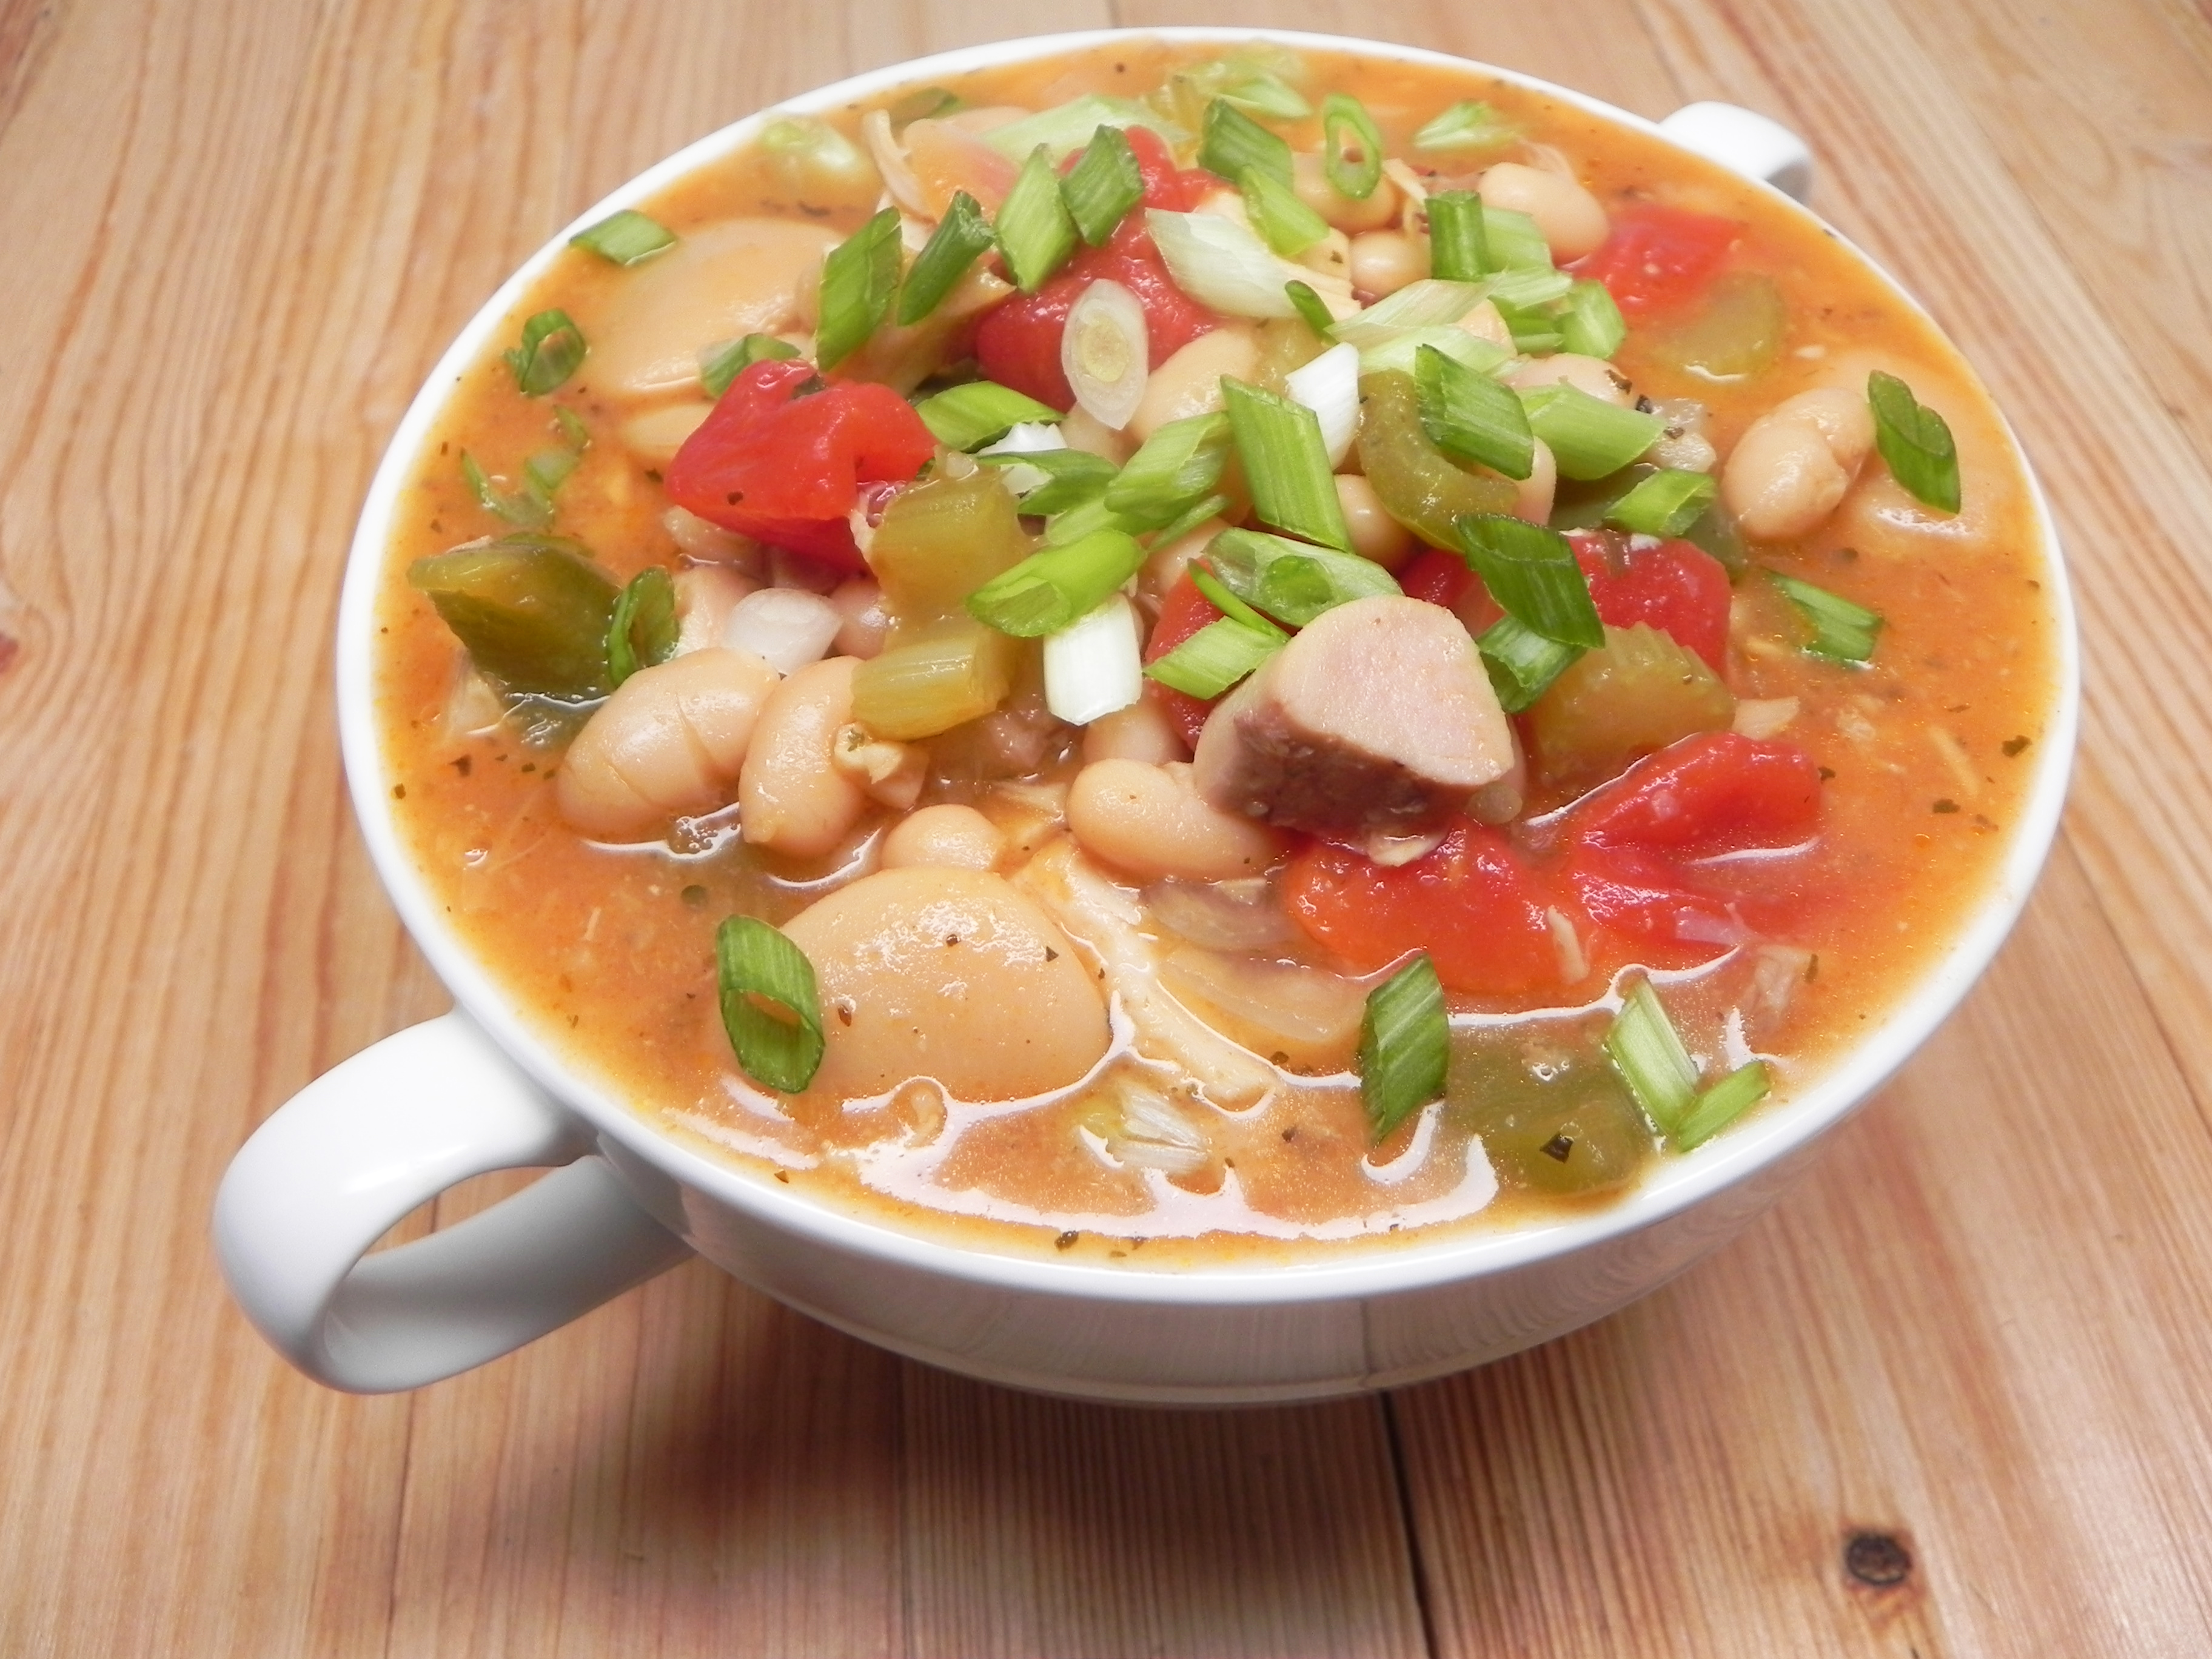 30-Minute White Bean Chili